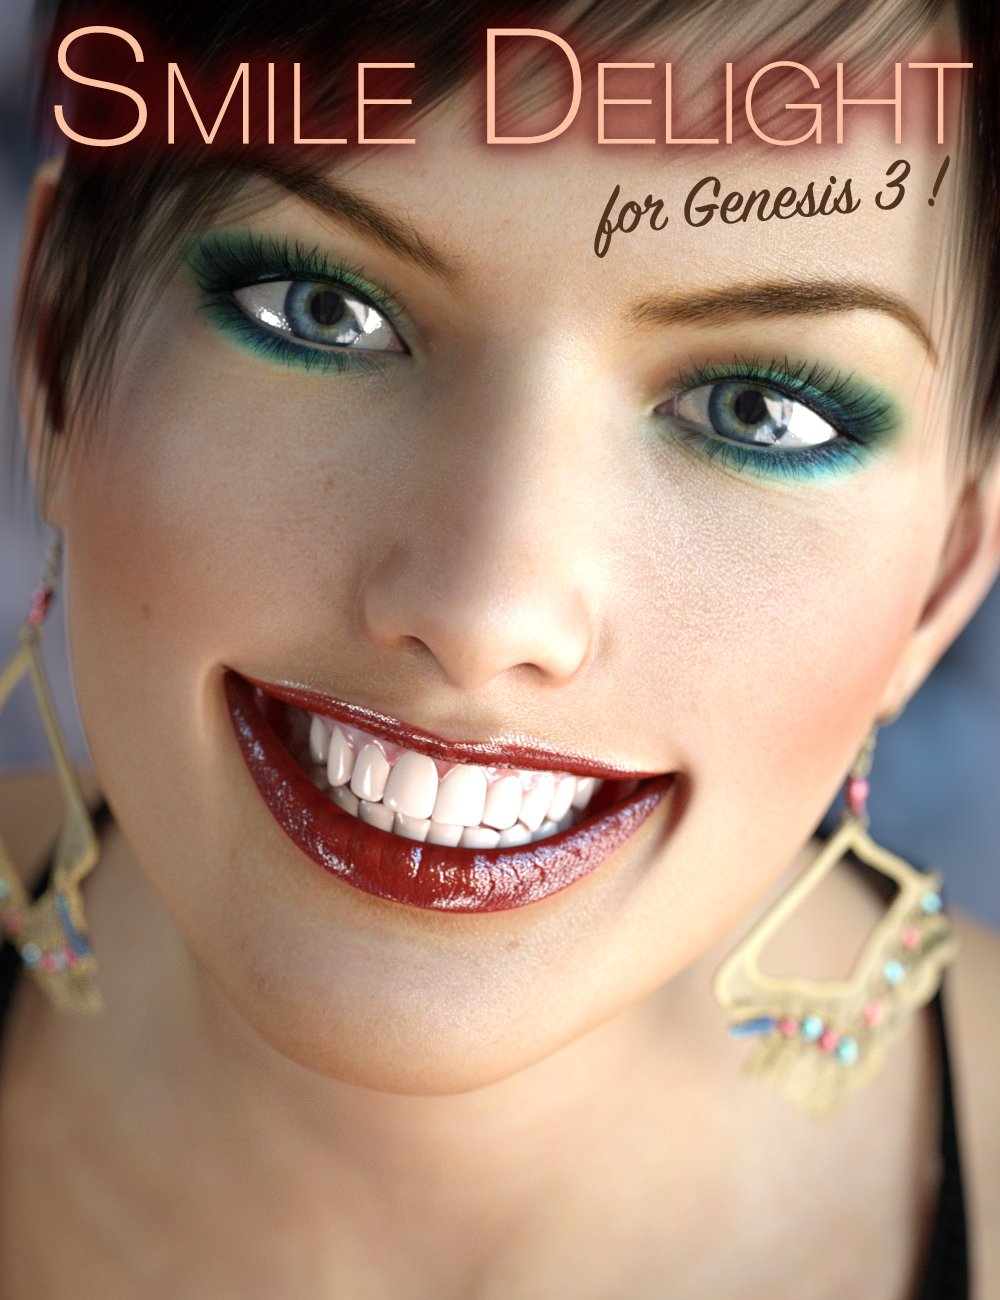 Smile Delight for Genesis 3 Female(s) by: Cake One, 3D Models by Daz 3D